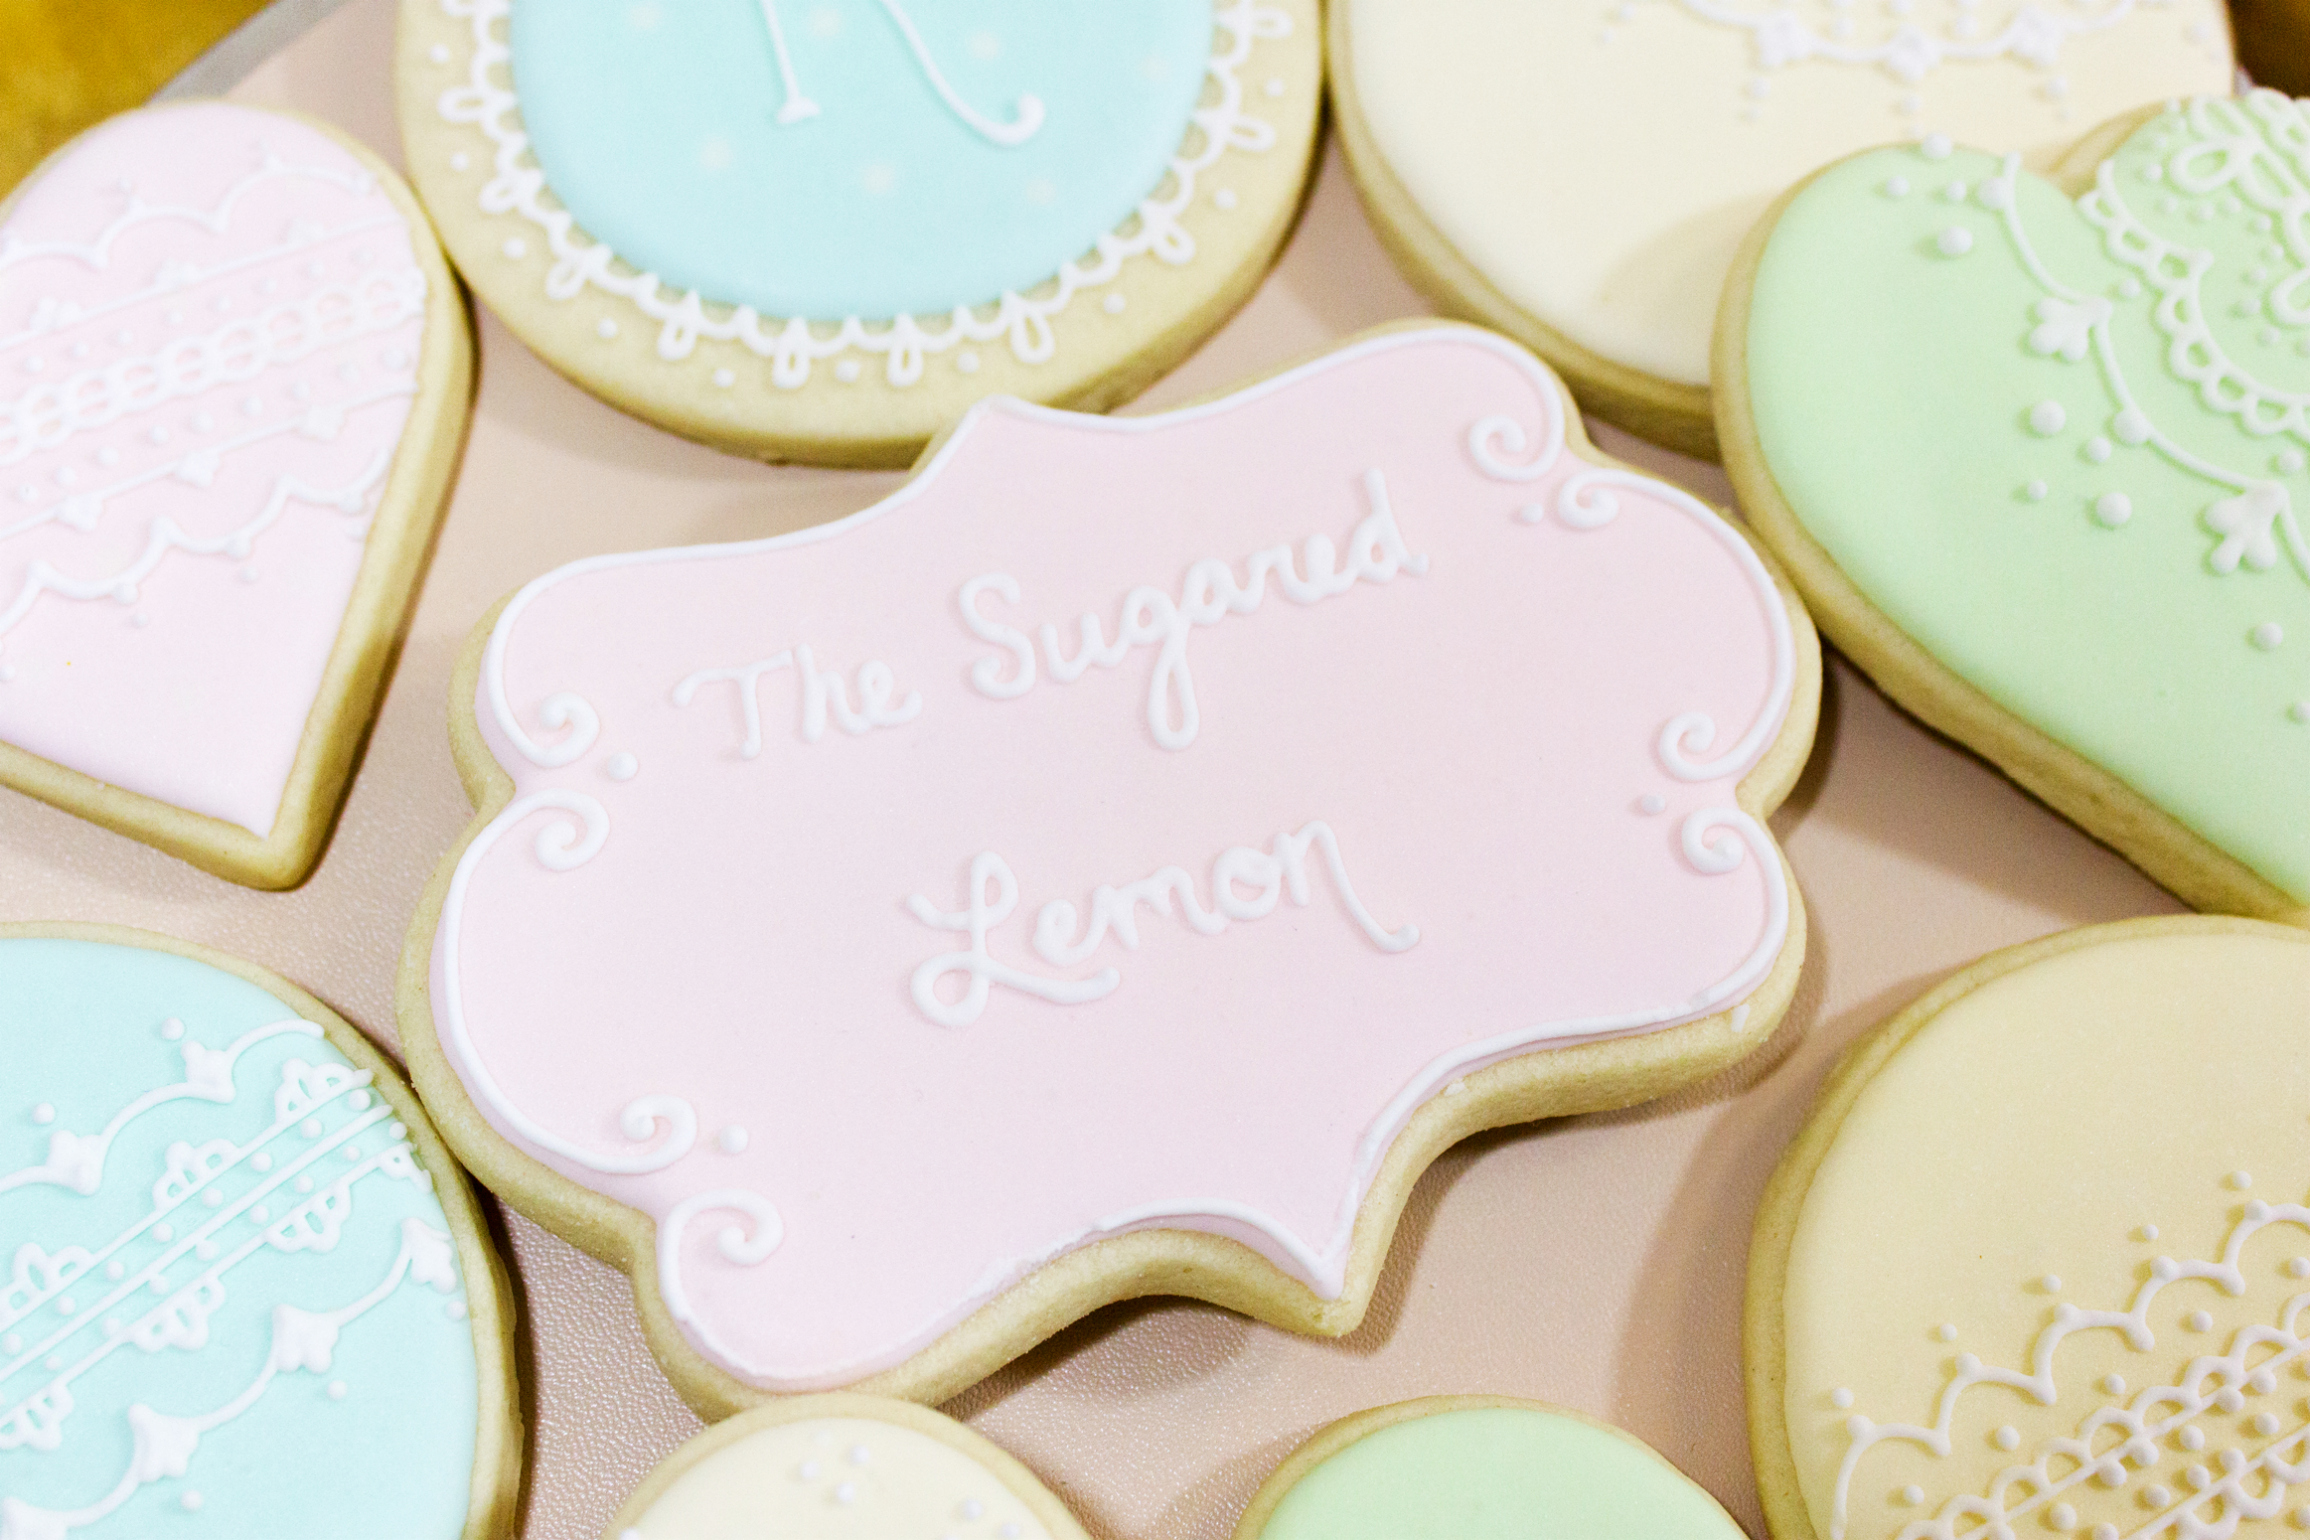 Fancy frosted cookies